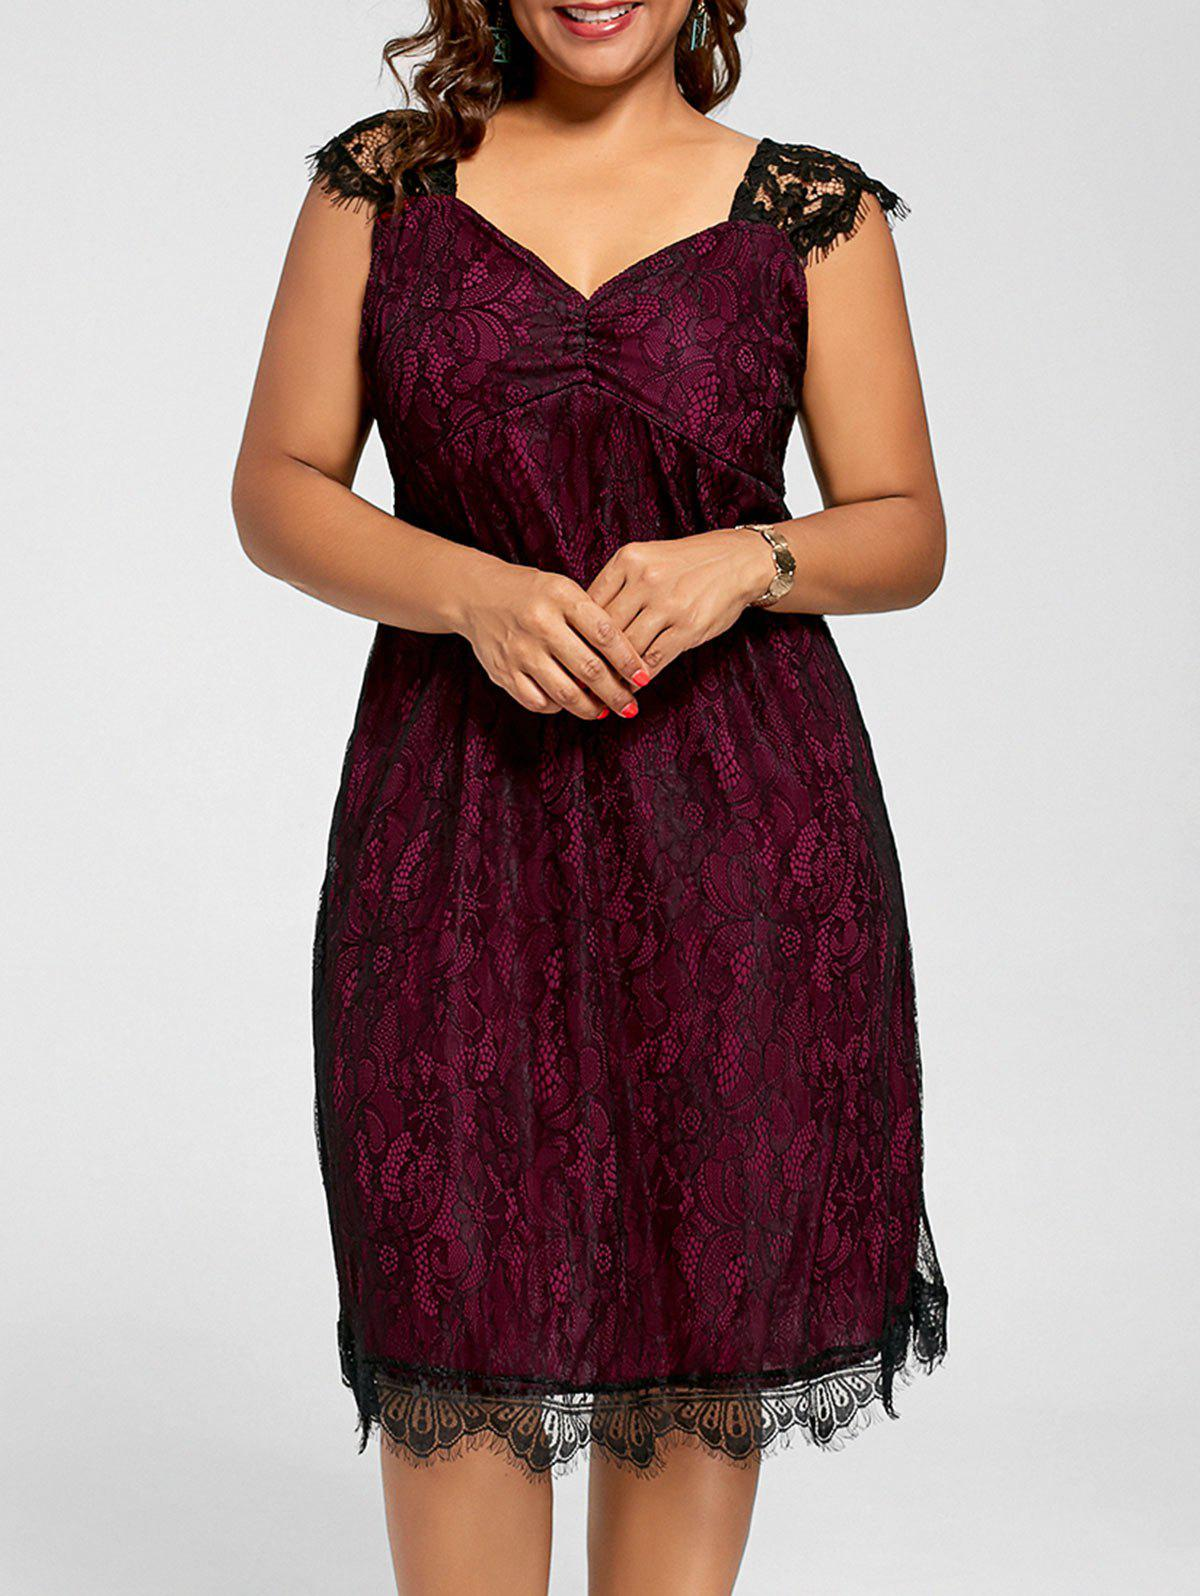 Lace Mini A Line Plus Size Cocktail DressWOMEN<br><br>Size: 3XL; Color: WINE RED; Style: Cute; Material: Polyester; Silhouette: A-Line; Dresses Length: Mini; Neckline: V-Neck; Sleeve Length: Sleeveless; Pattern Type: Solid; With Belt: No; Season: Summer; Weight: 0.2500kg; Package Contents: 1 x Dress;